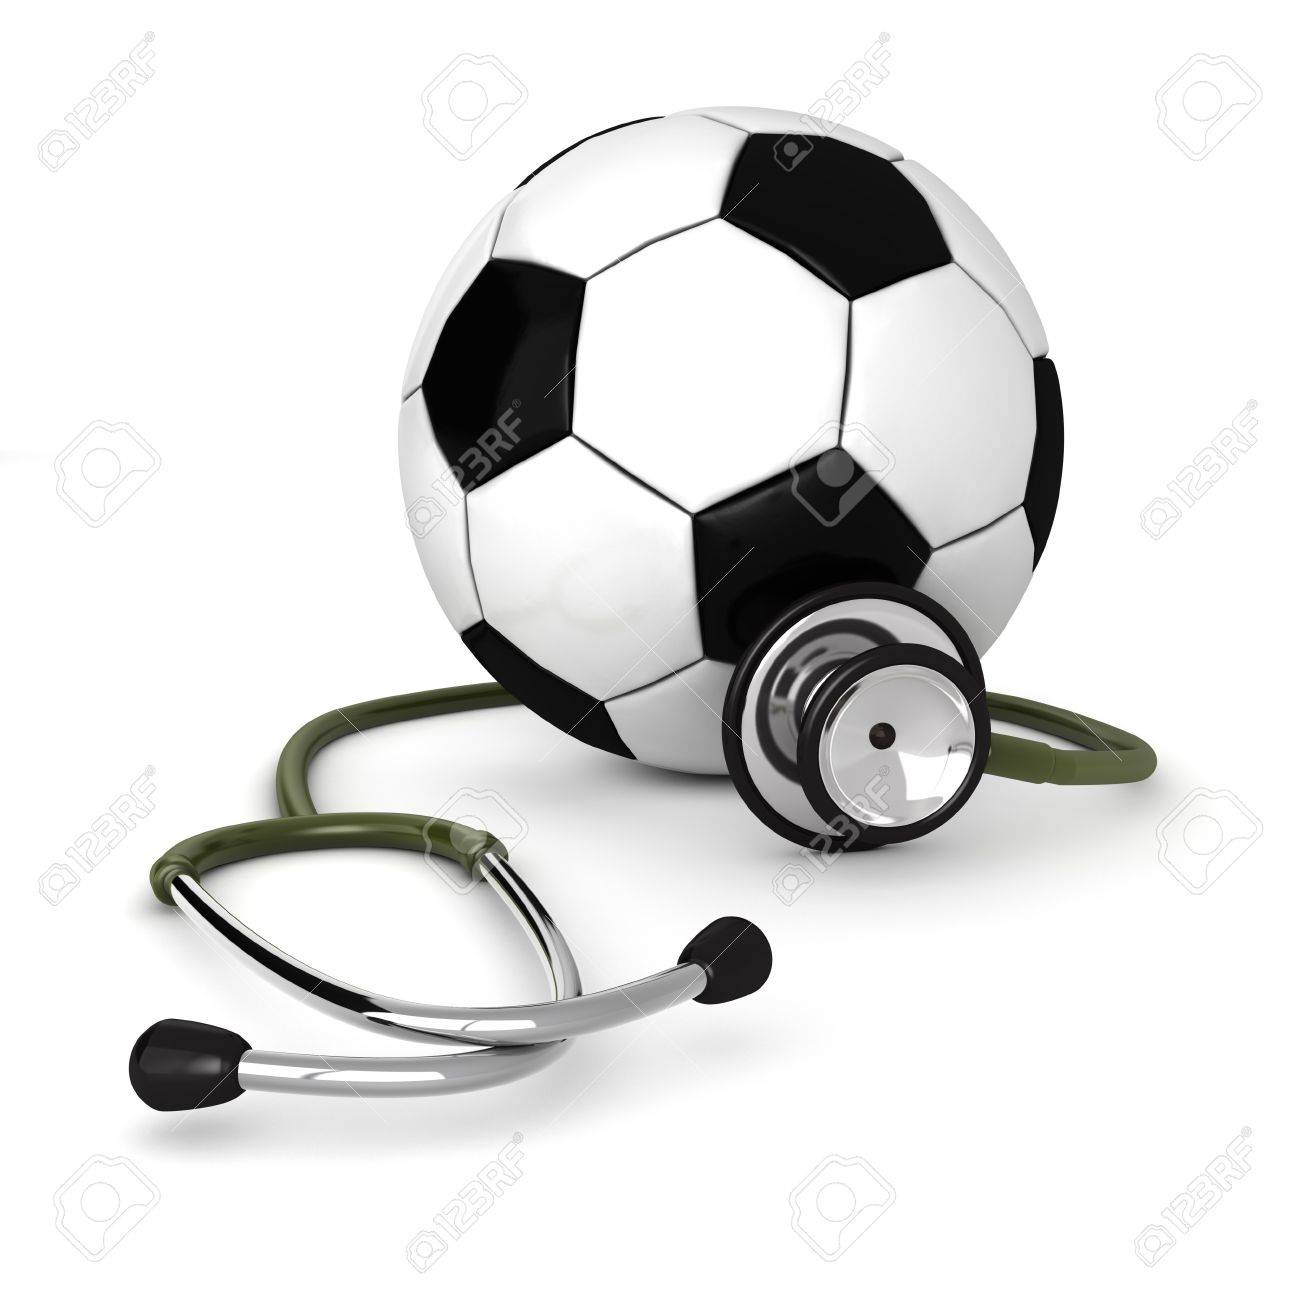 3d computer genrated image of a stethosocpe around a soccer ball isolated on white background Stock Photo - 8828691